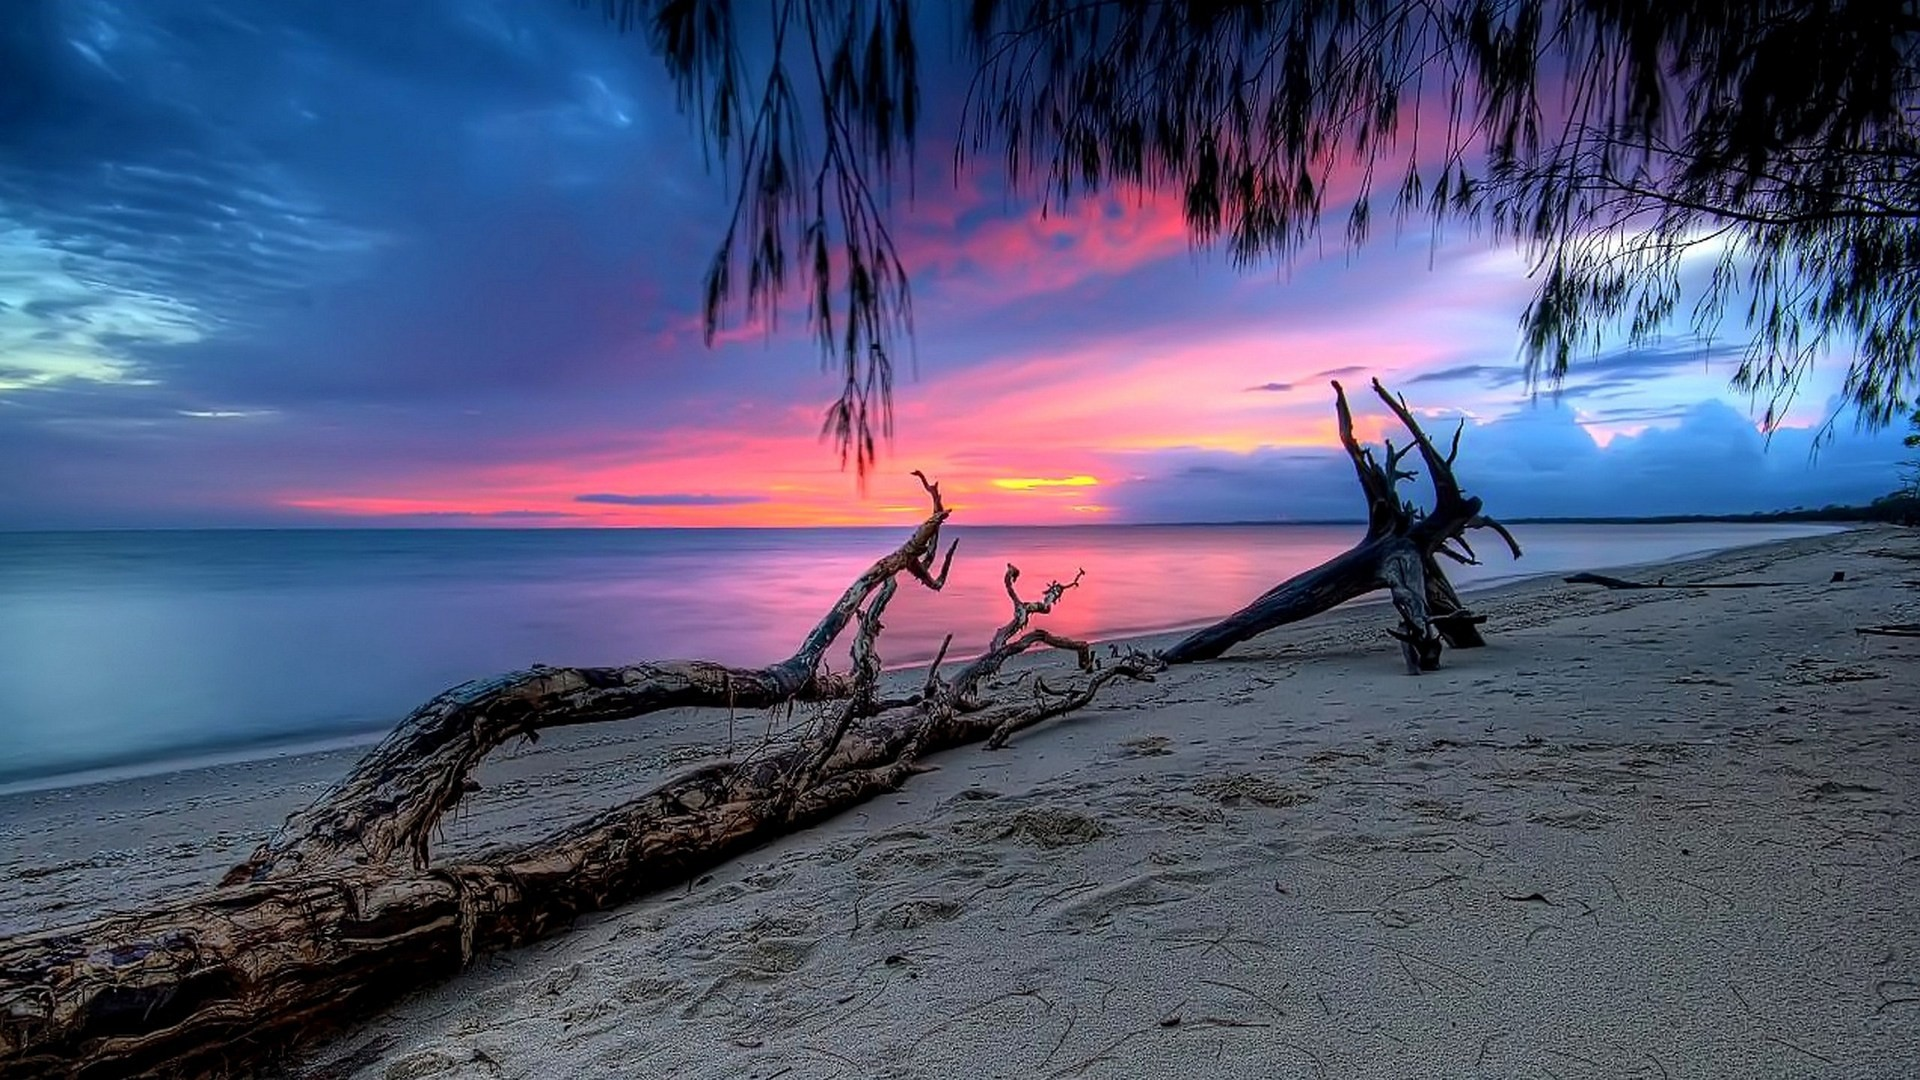 gorgeous wallpapers for desktop 29 images